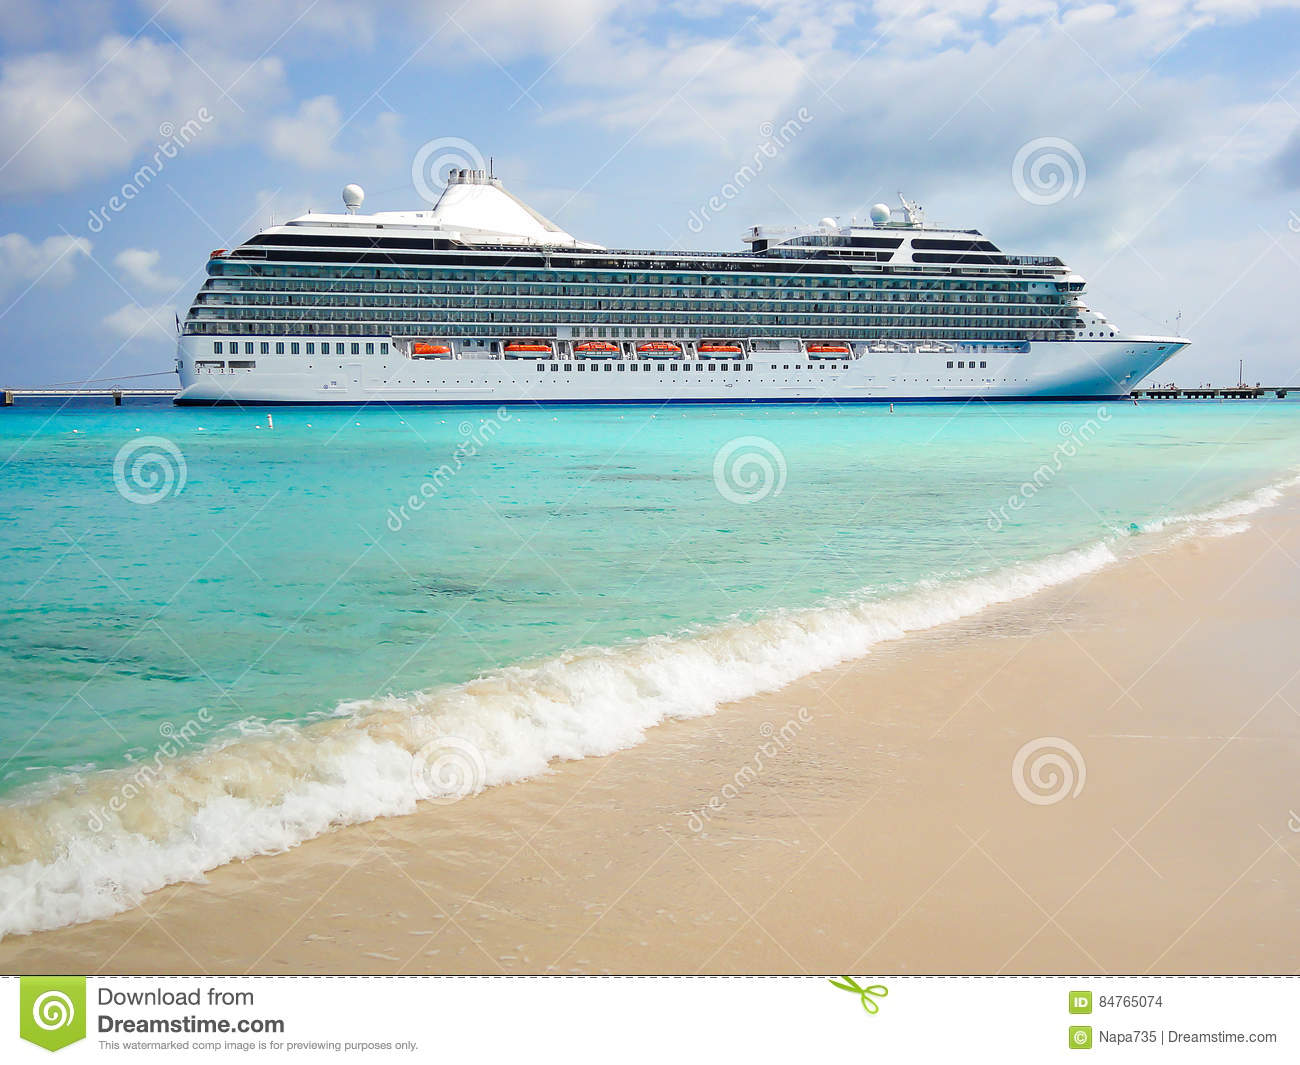 Download Side View Of Cruise Ship Stock Photo Image